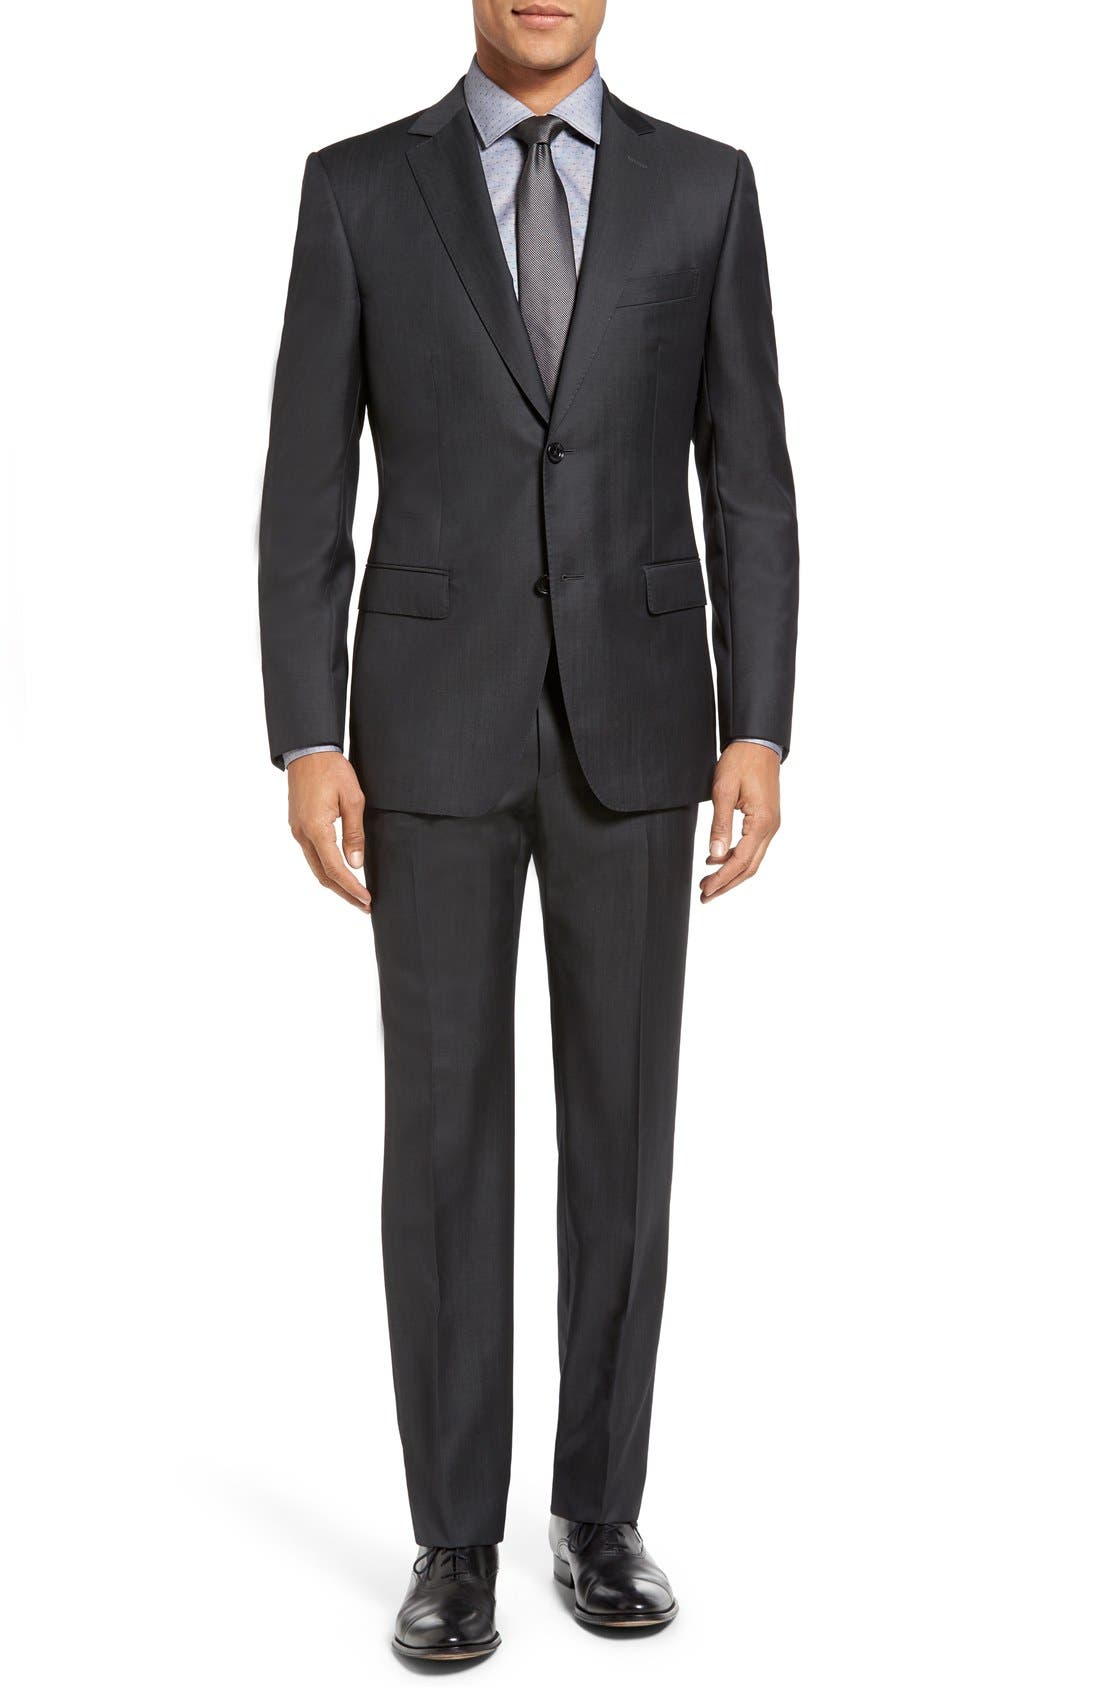 Main Image - Z Zegna Trim Fit Solid Wool Suit